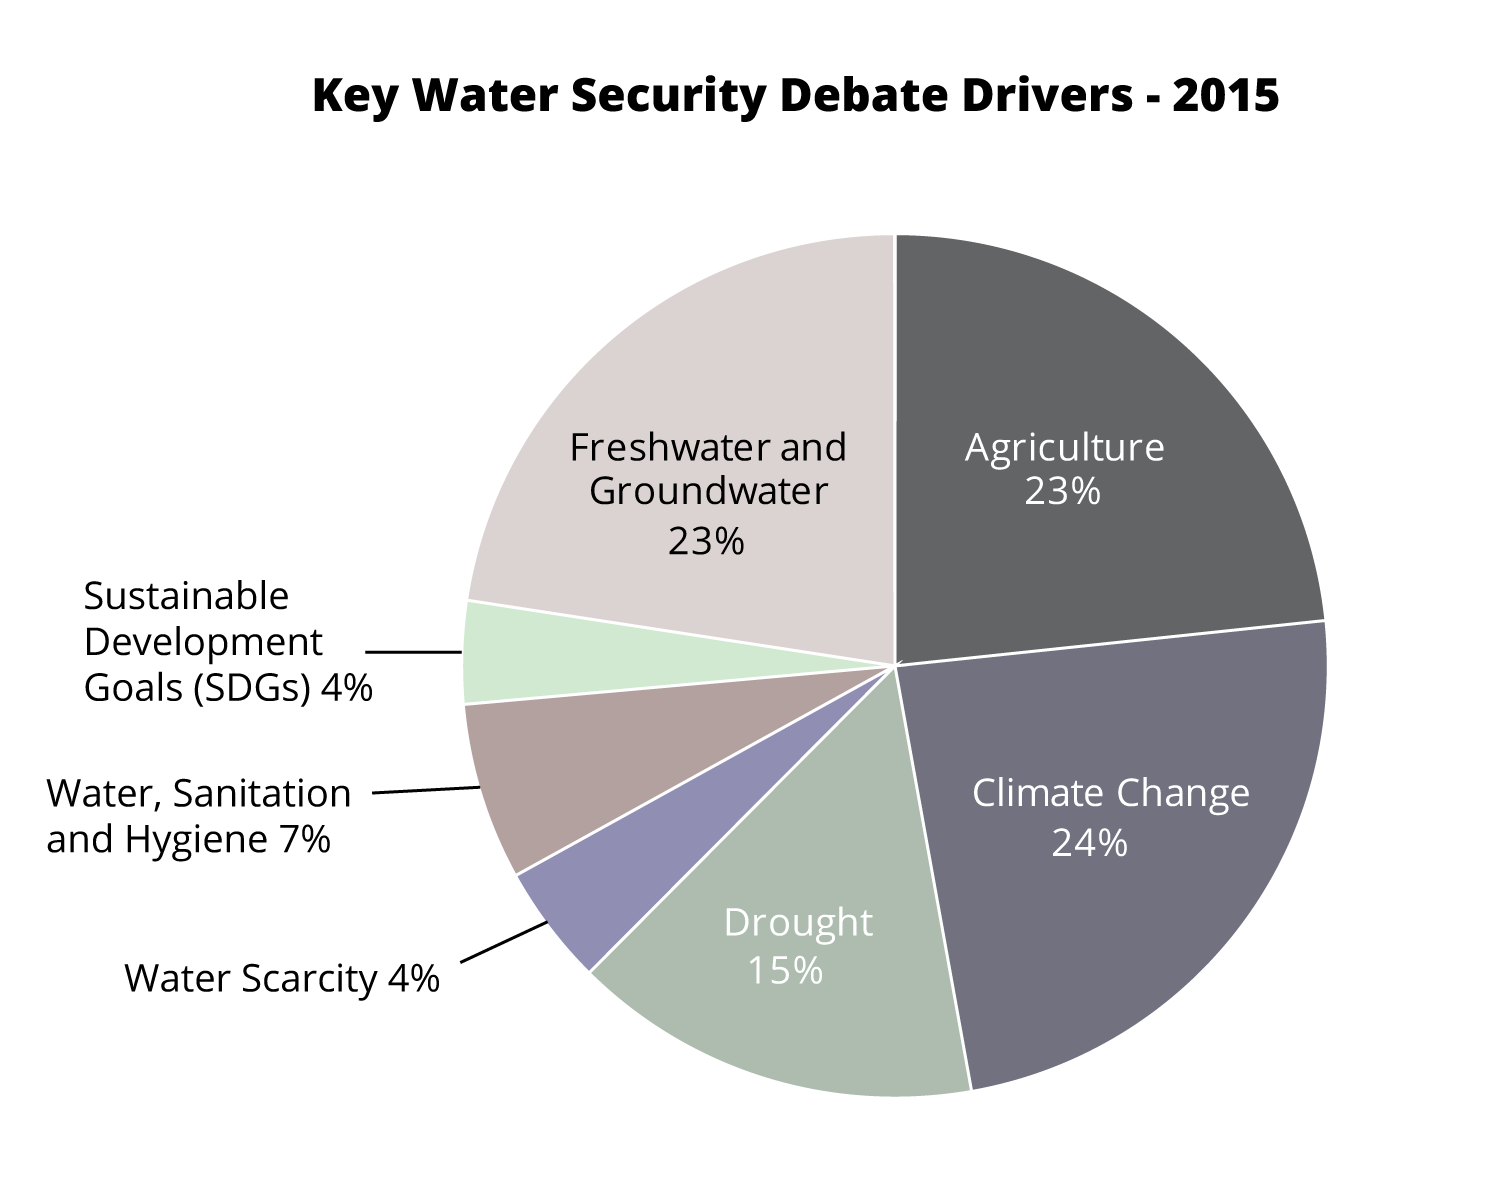 Key Water Security Debate Drivers